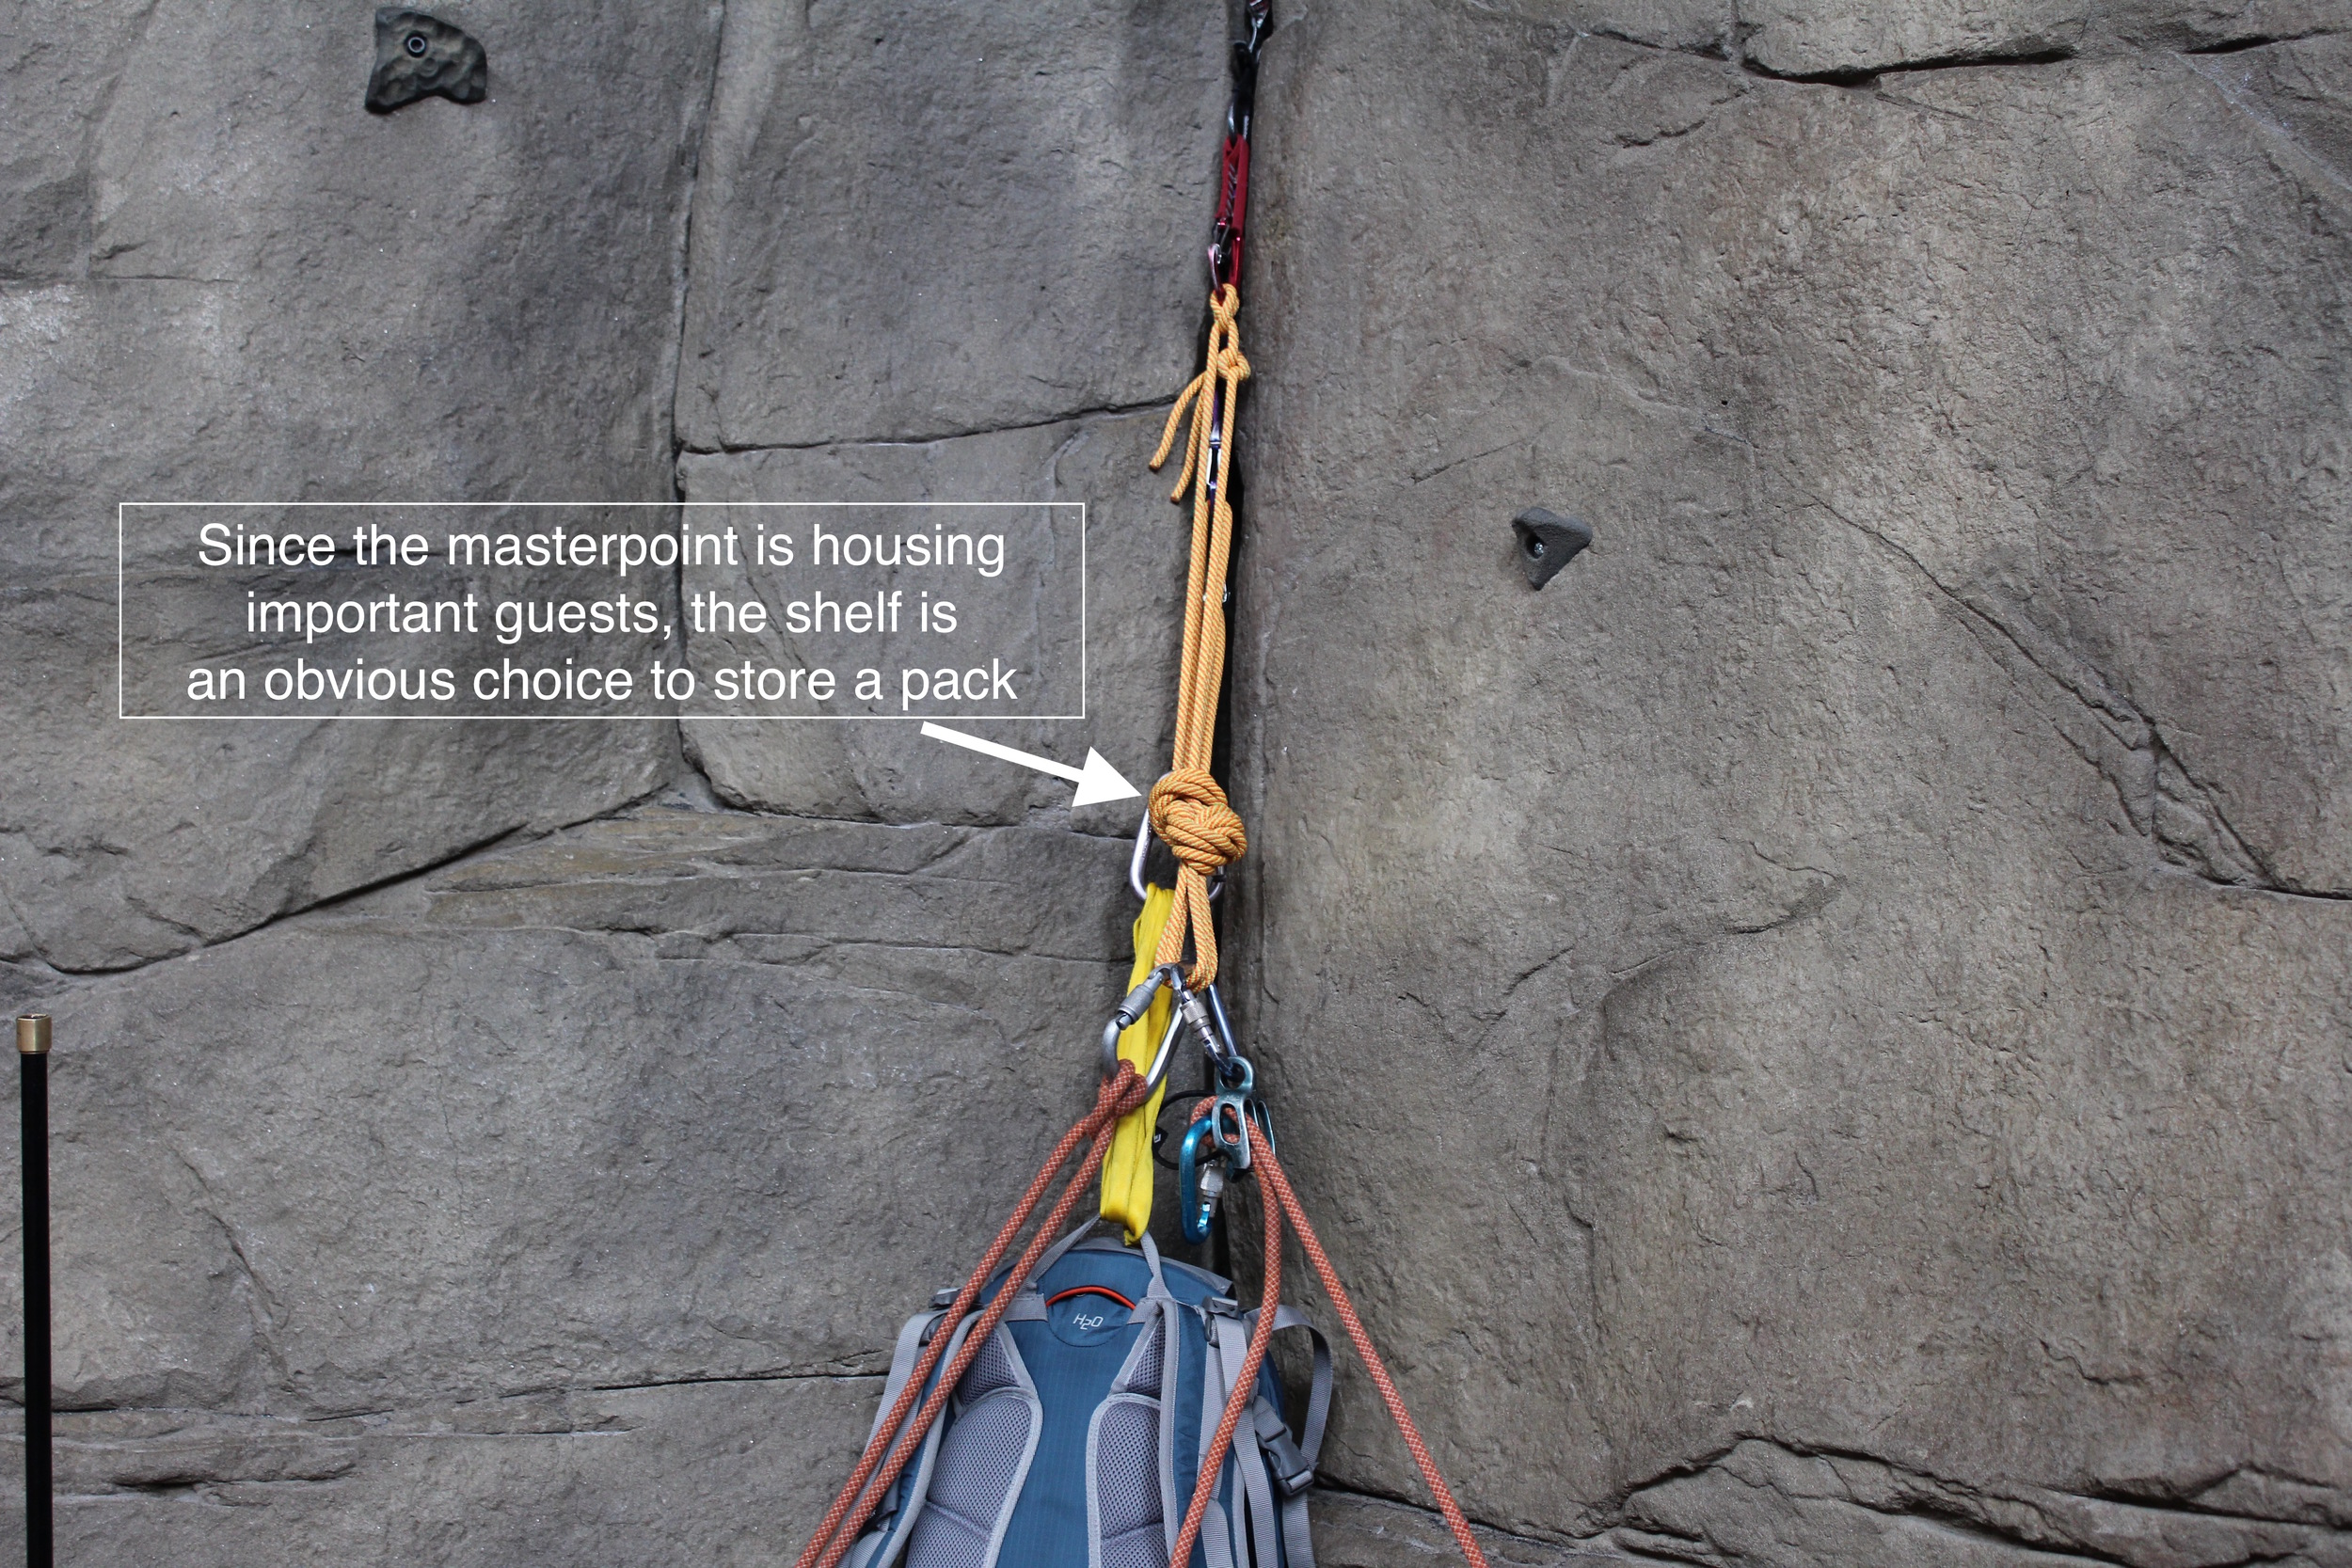 If the climbing teams needs an auxiliary attachment point that has the same values as the masterpoint, the shelf is always available.  The backpack, for example, is not a primary resident of the anchor, but it might be heavy and have vital equipment inside.